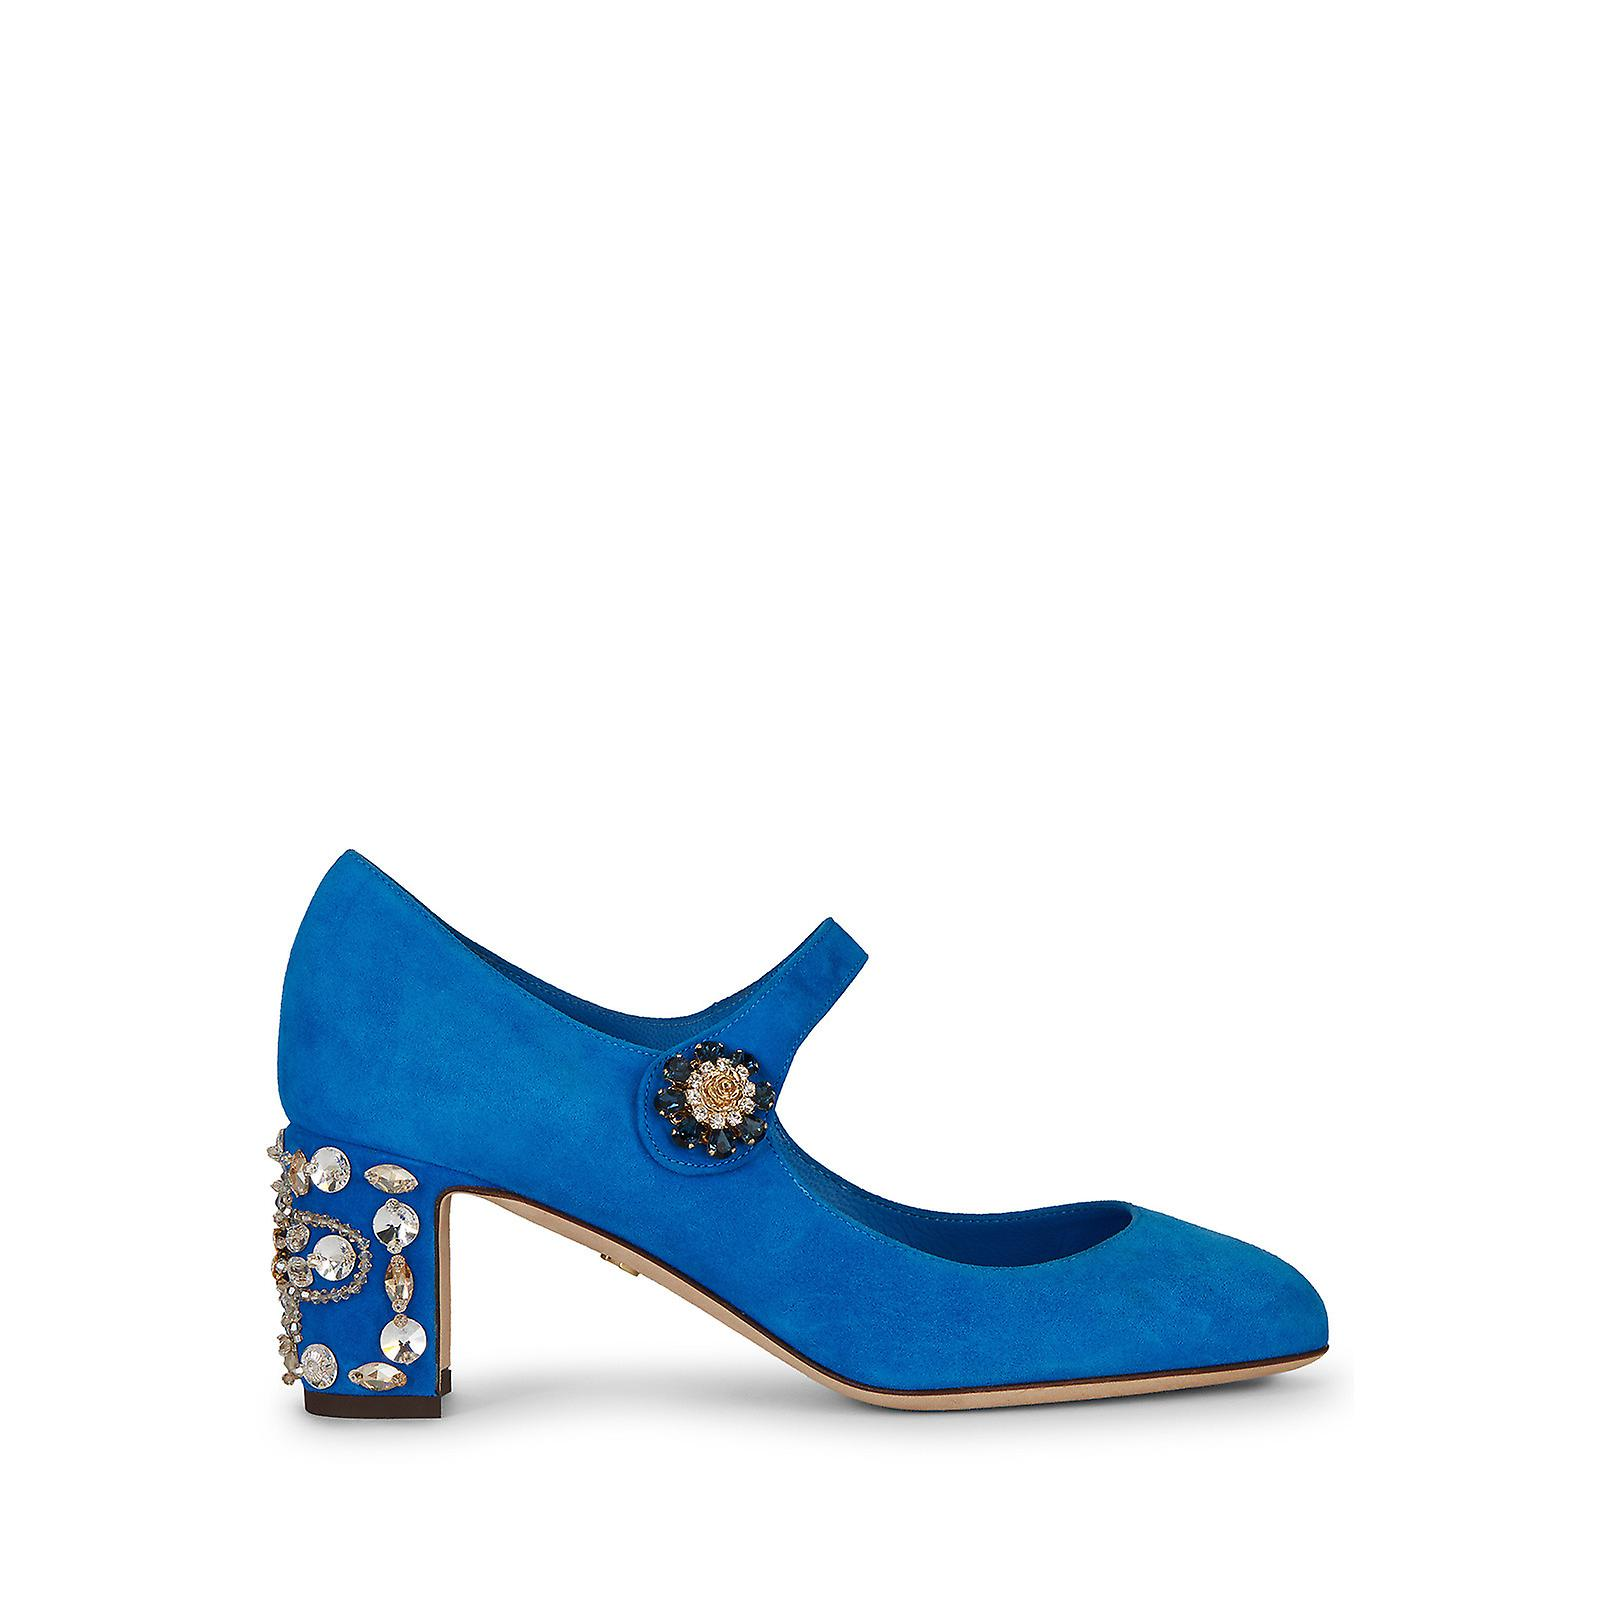 Dolce & Gabbana Mid Block Heel Pumps In Light Blue Suede 6v4YP